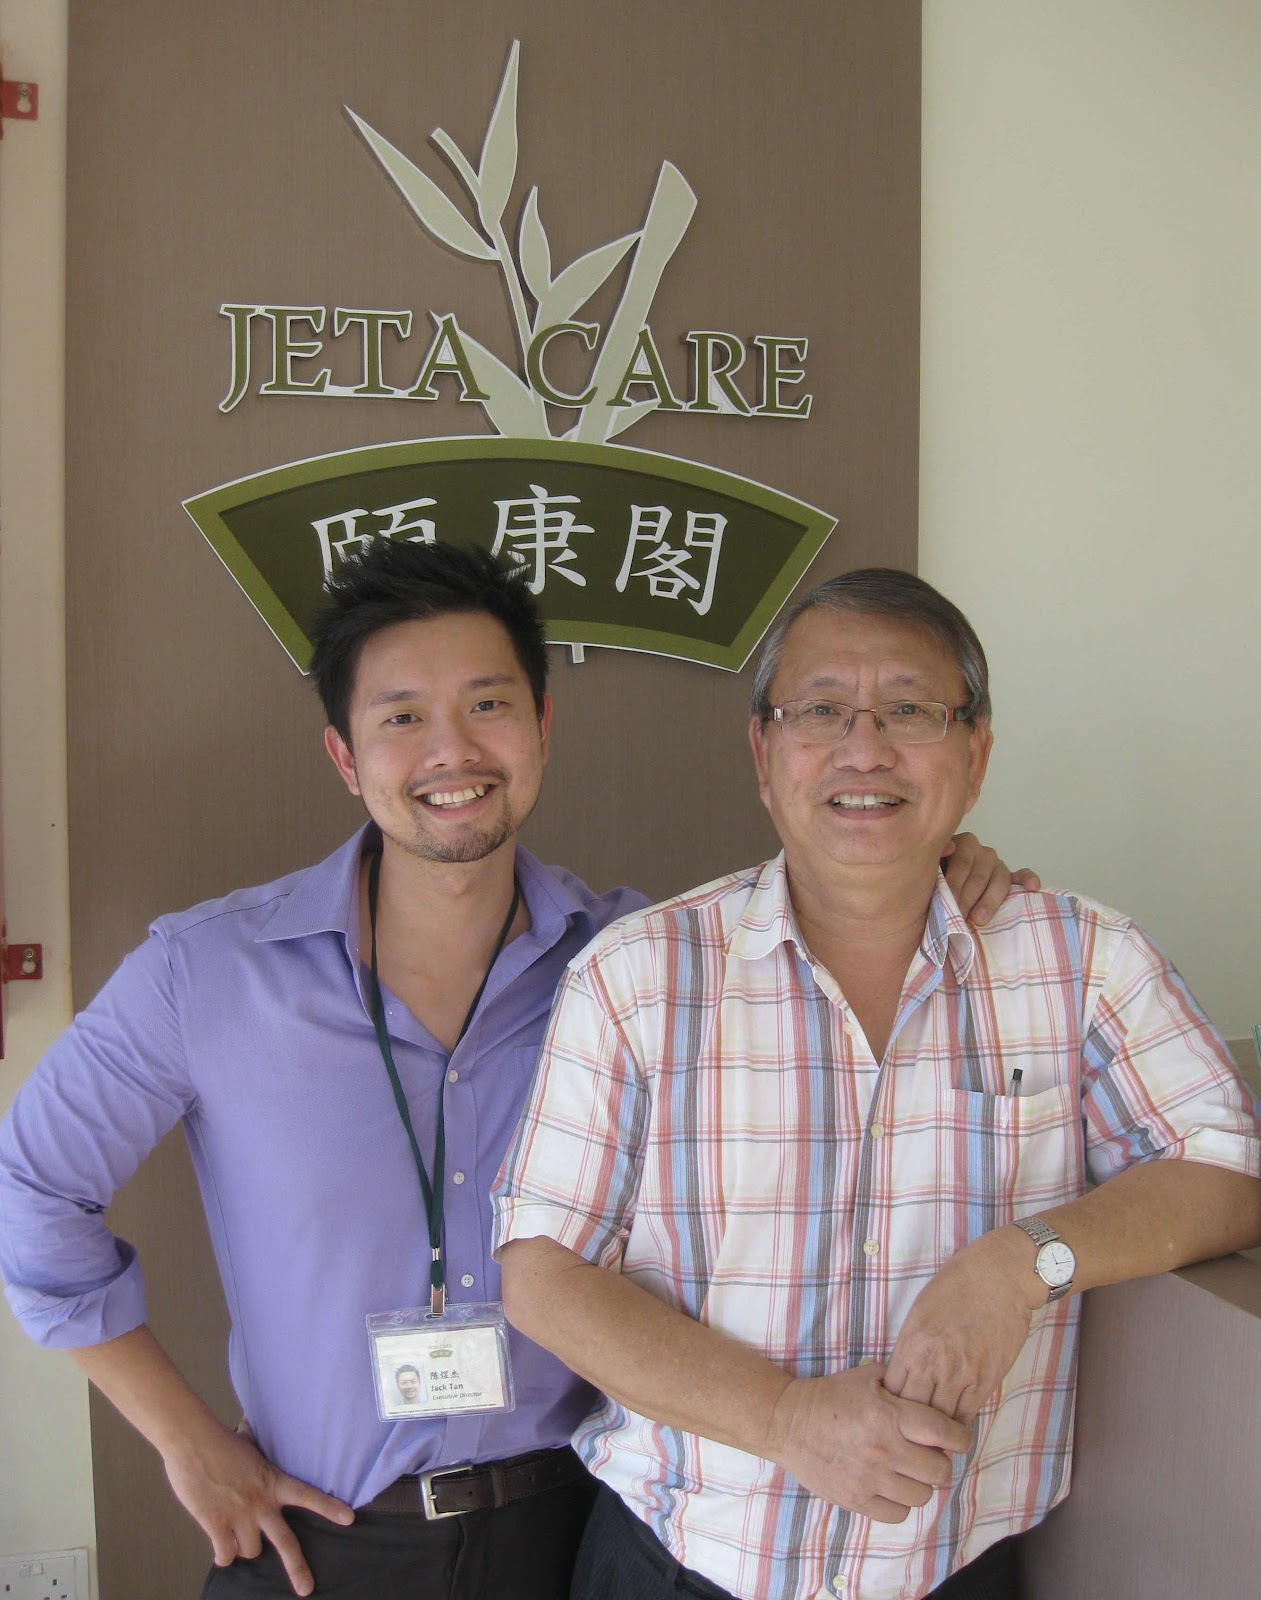 Jack Lim Executive Director Of Jeta Care With His Father And Mentor Tan Choe Lam